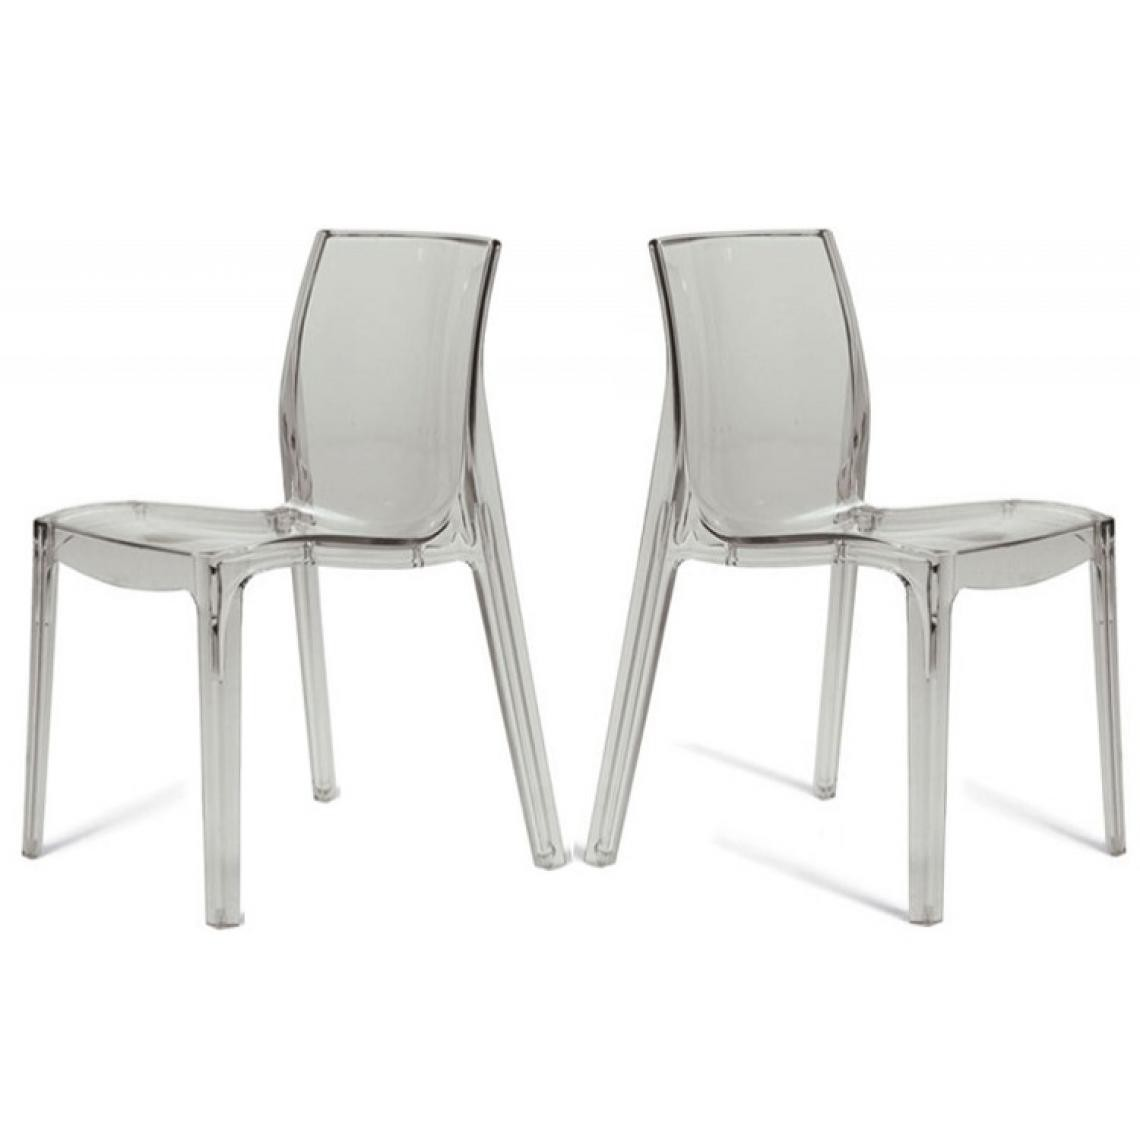 Chaises Transparentes Suisse Lot De 2 Chaises Transparentes Lady 3 Suisses